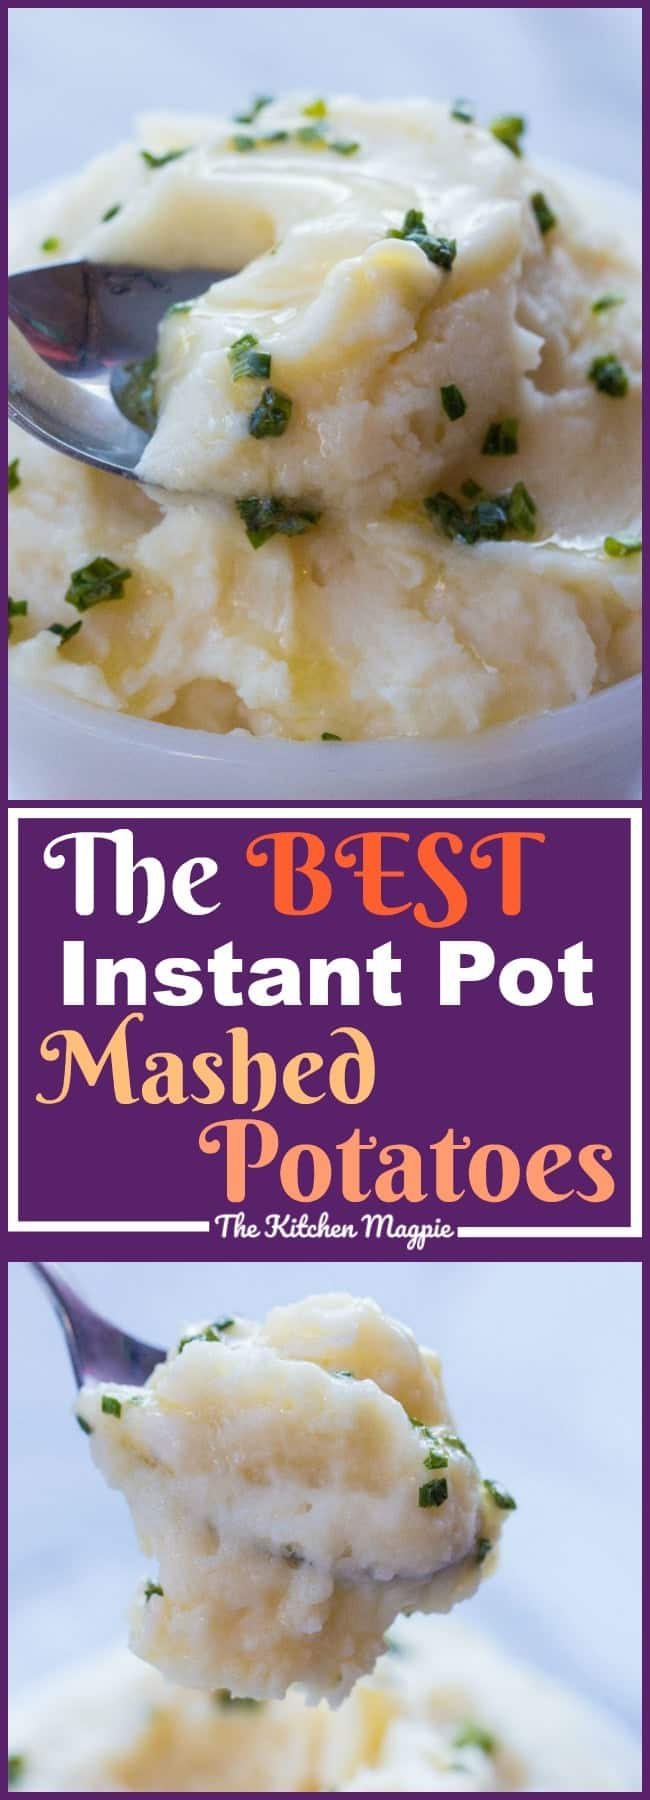 How to make the best Instant Pot Mashed Potatoes! Once you try these you will never make boiled mashed potatoes again! Recipe from @kitchenmagie #recipe #mashedpotatoes #christmas #instantpot #pressurecooker #potatoes #vegetables